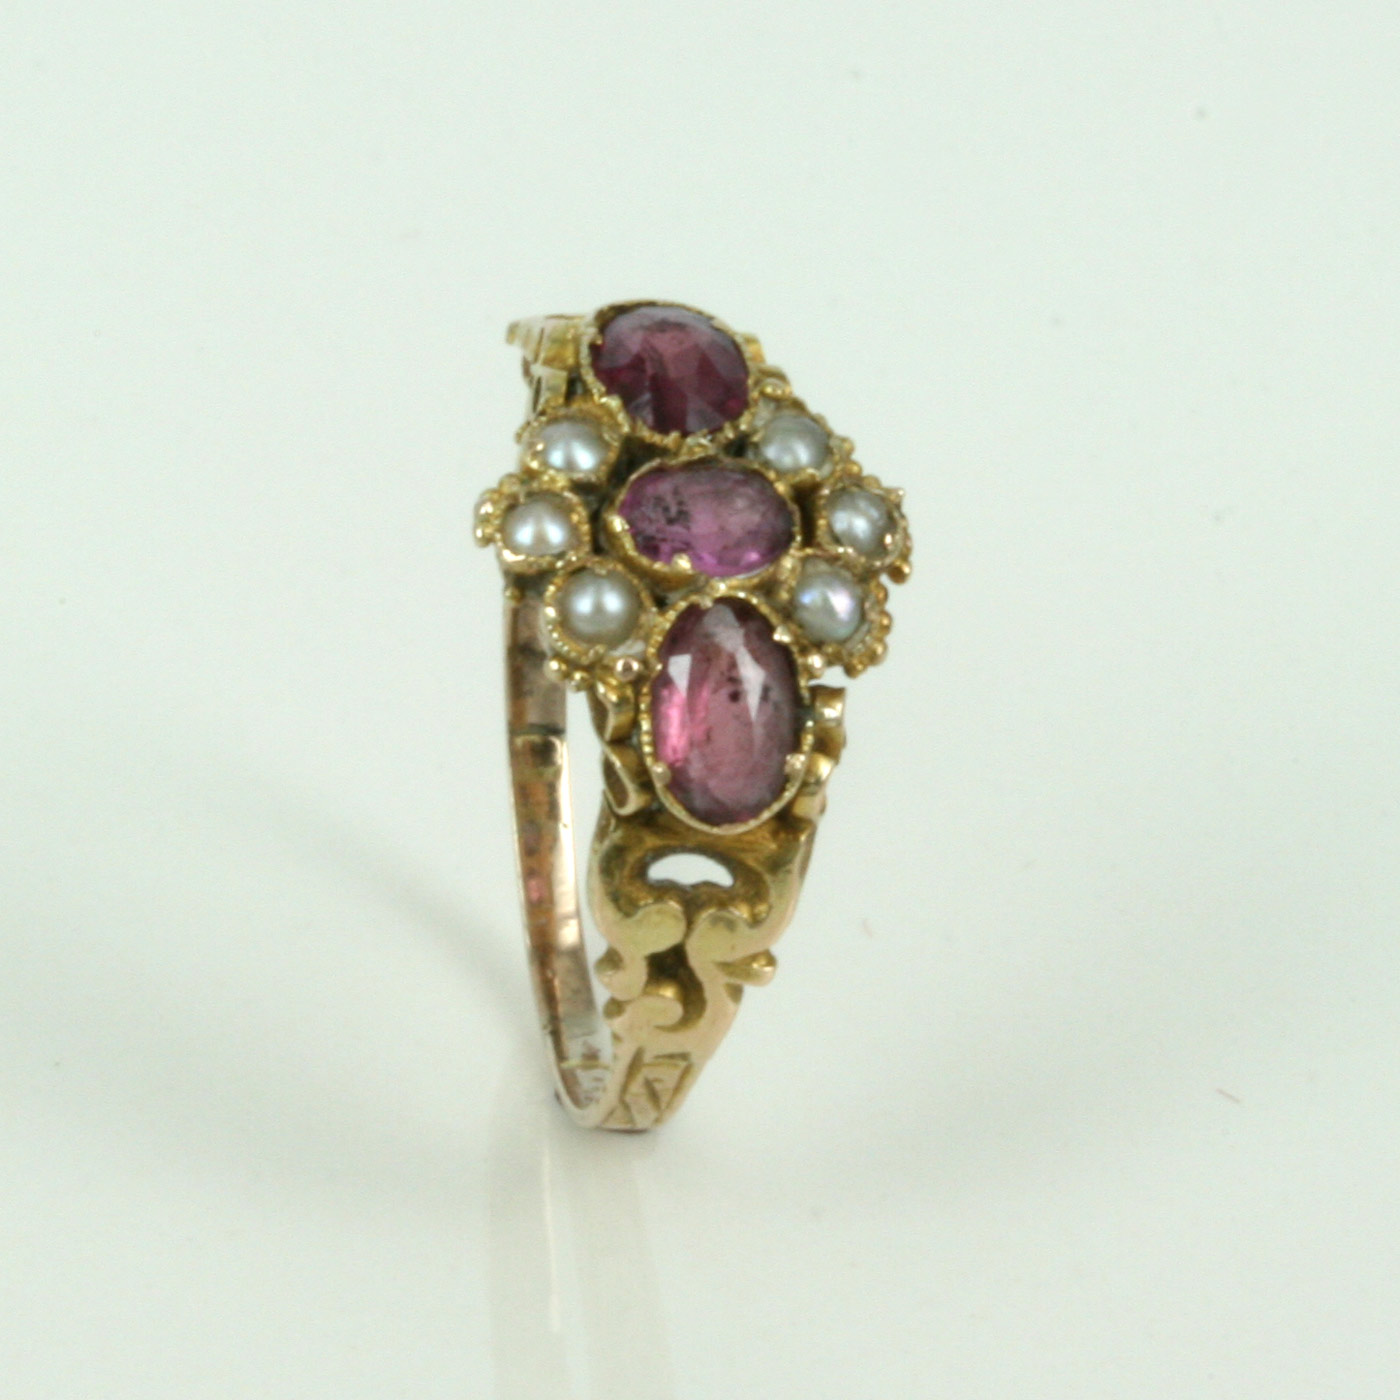 Buy 12ct Antique Garnet Amp Pearl Ring Sold Items Sold